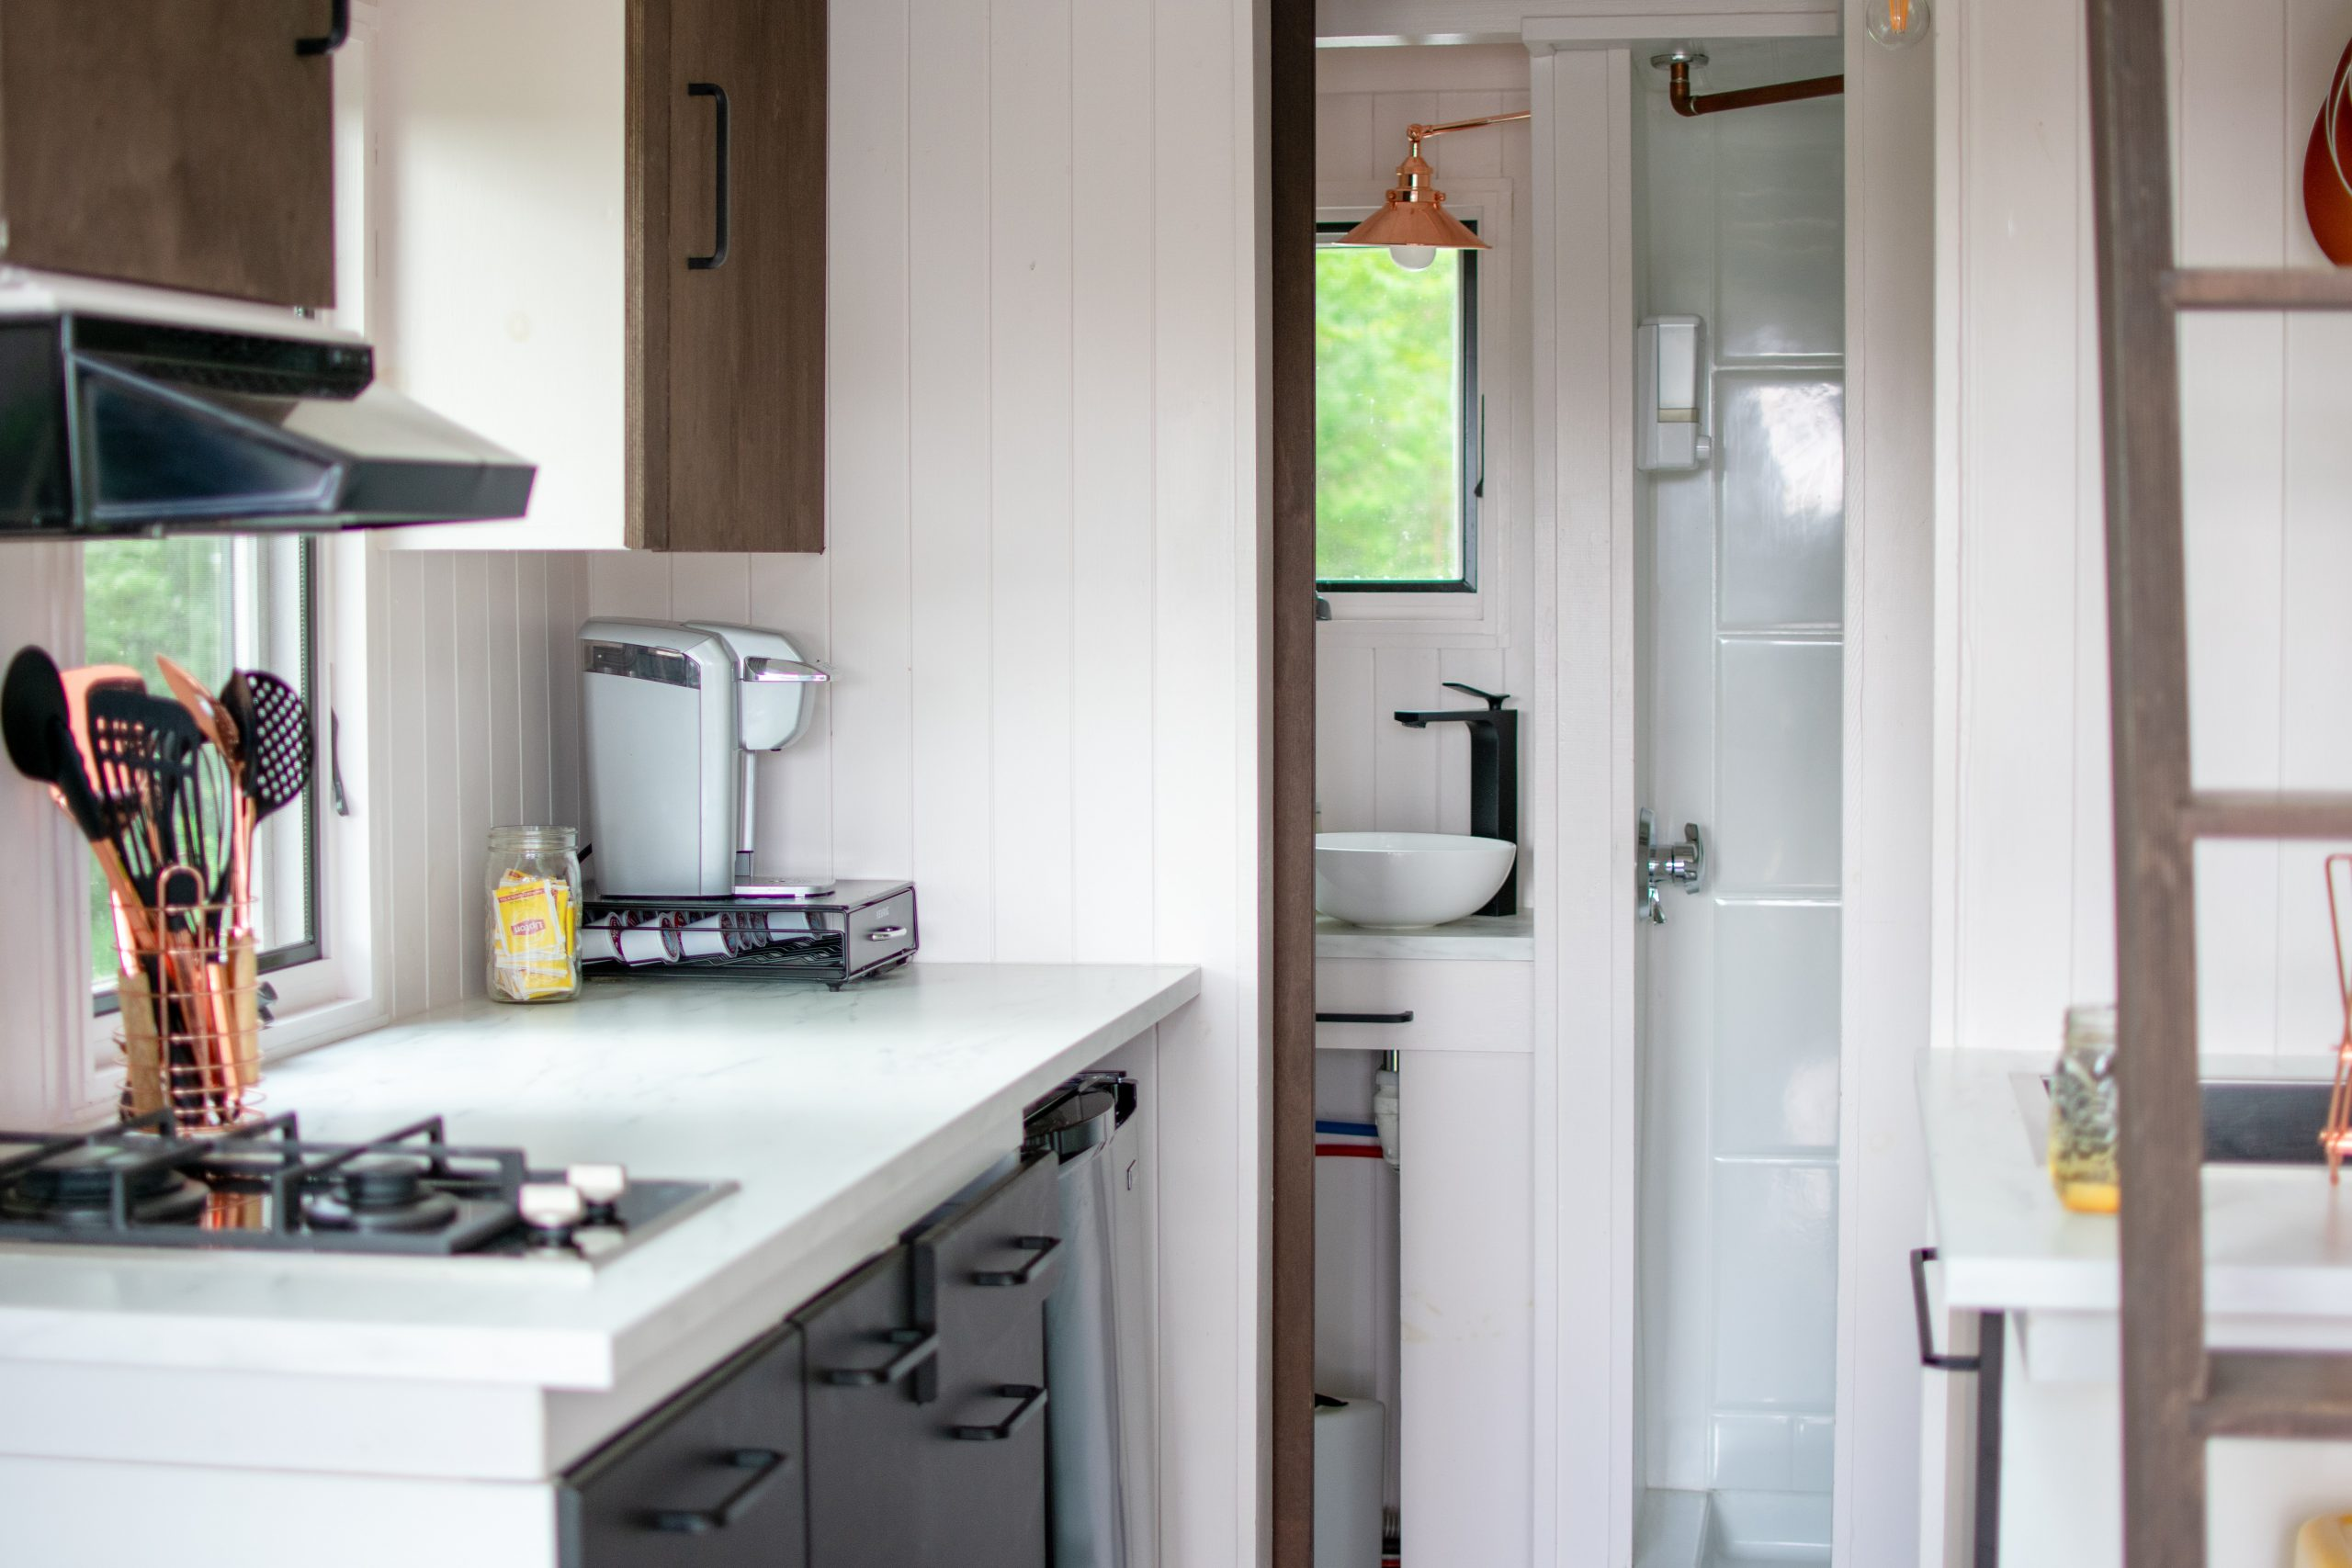 Do you know about granny pods/backyard cottage? They are the best way to keep your loved ones close to you! There are so many fun things you can do with granny pods/backyard cottage interiors.